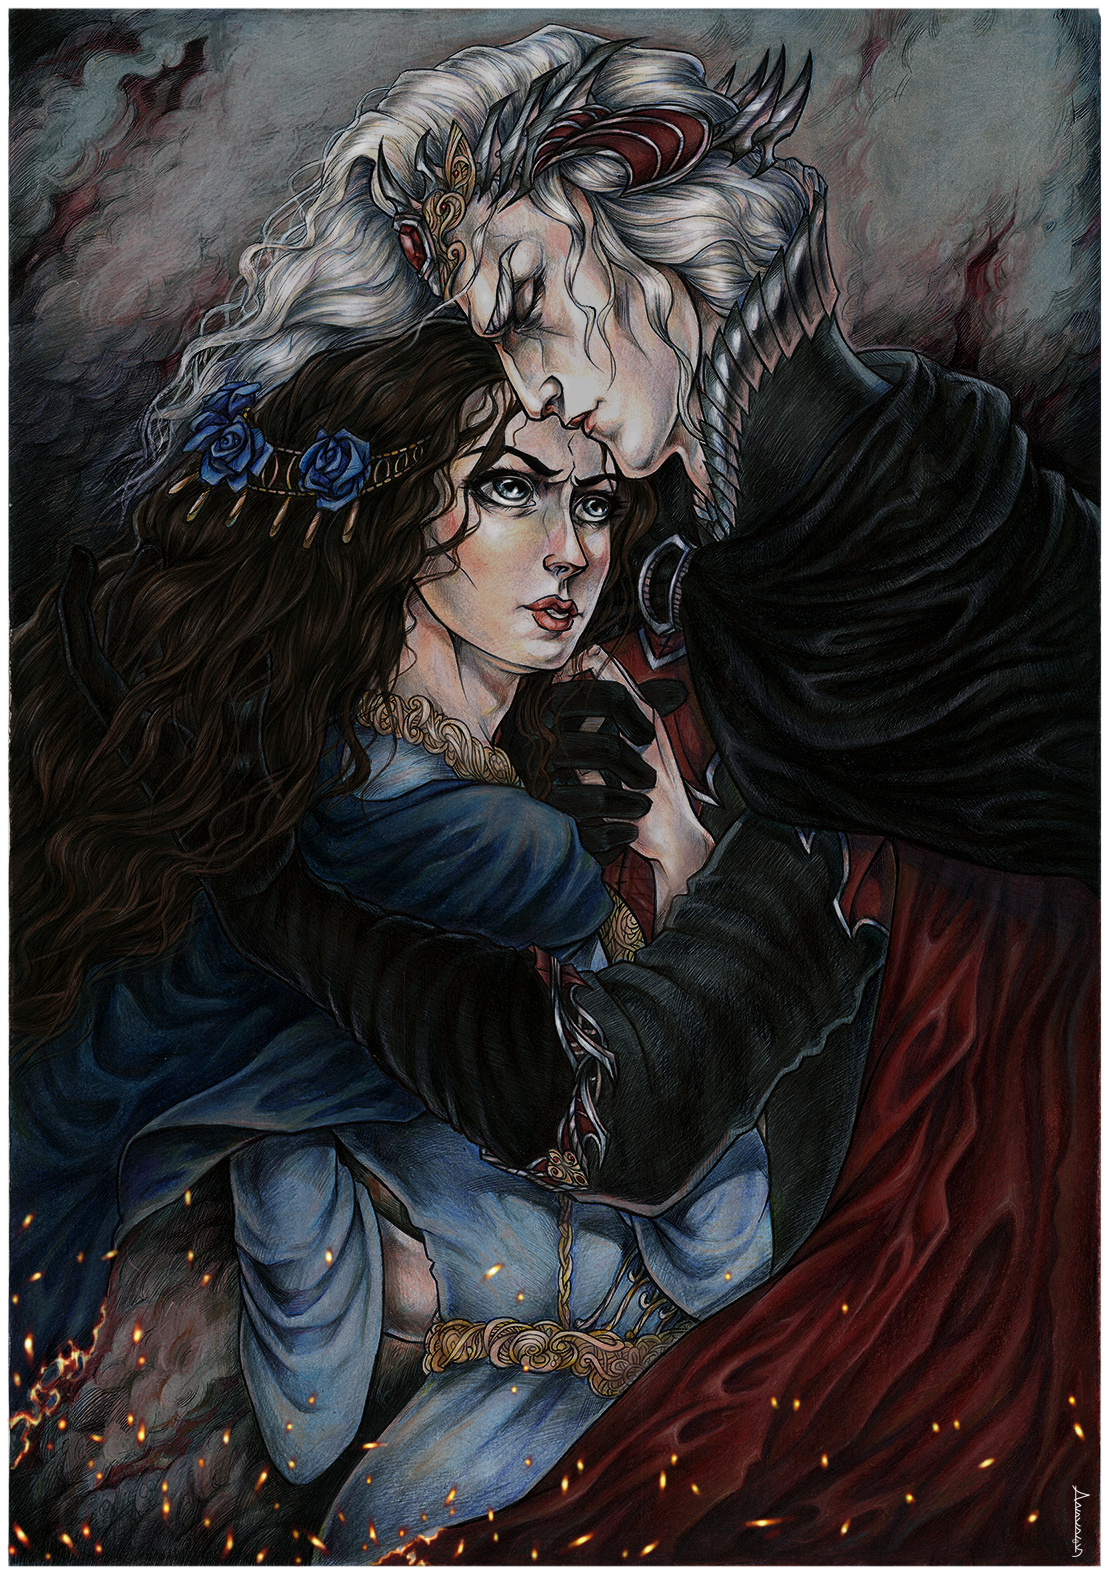 A song of ice and fire by ProKriK on DeviantArt